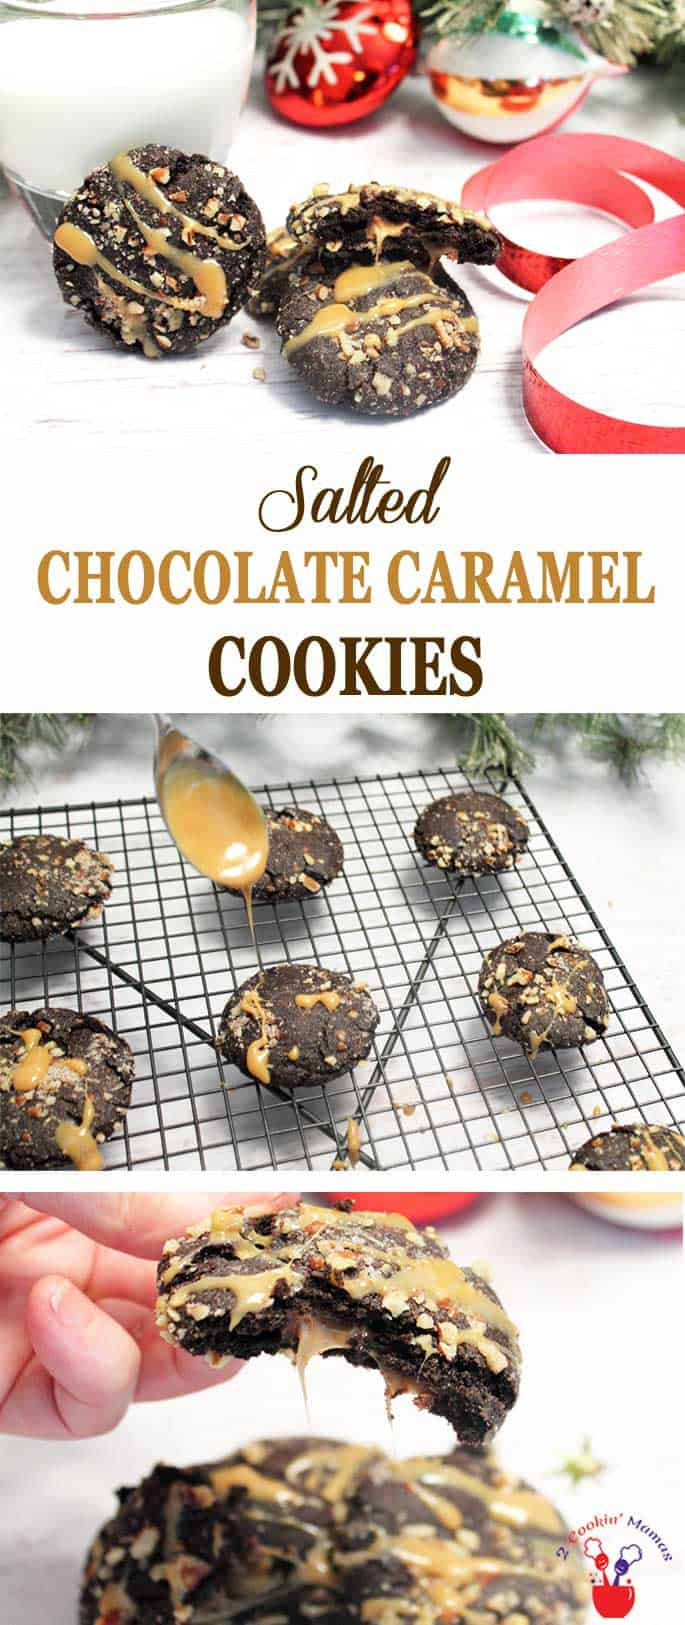 Salted Chocolate Caramel Cookies | 2 Cookin Mamas These Chocolate Caramel Cookies are easy to make & have a caramel surprise inside. It's like a molten lava cake in cookie form! #cookies #Christmascookies #chocolate #caramel